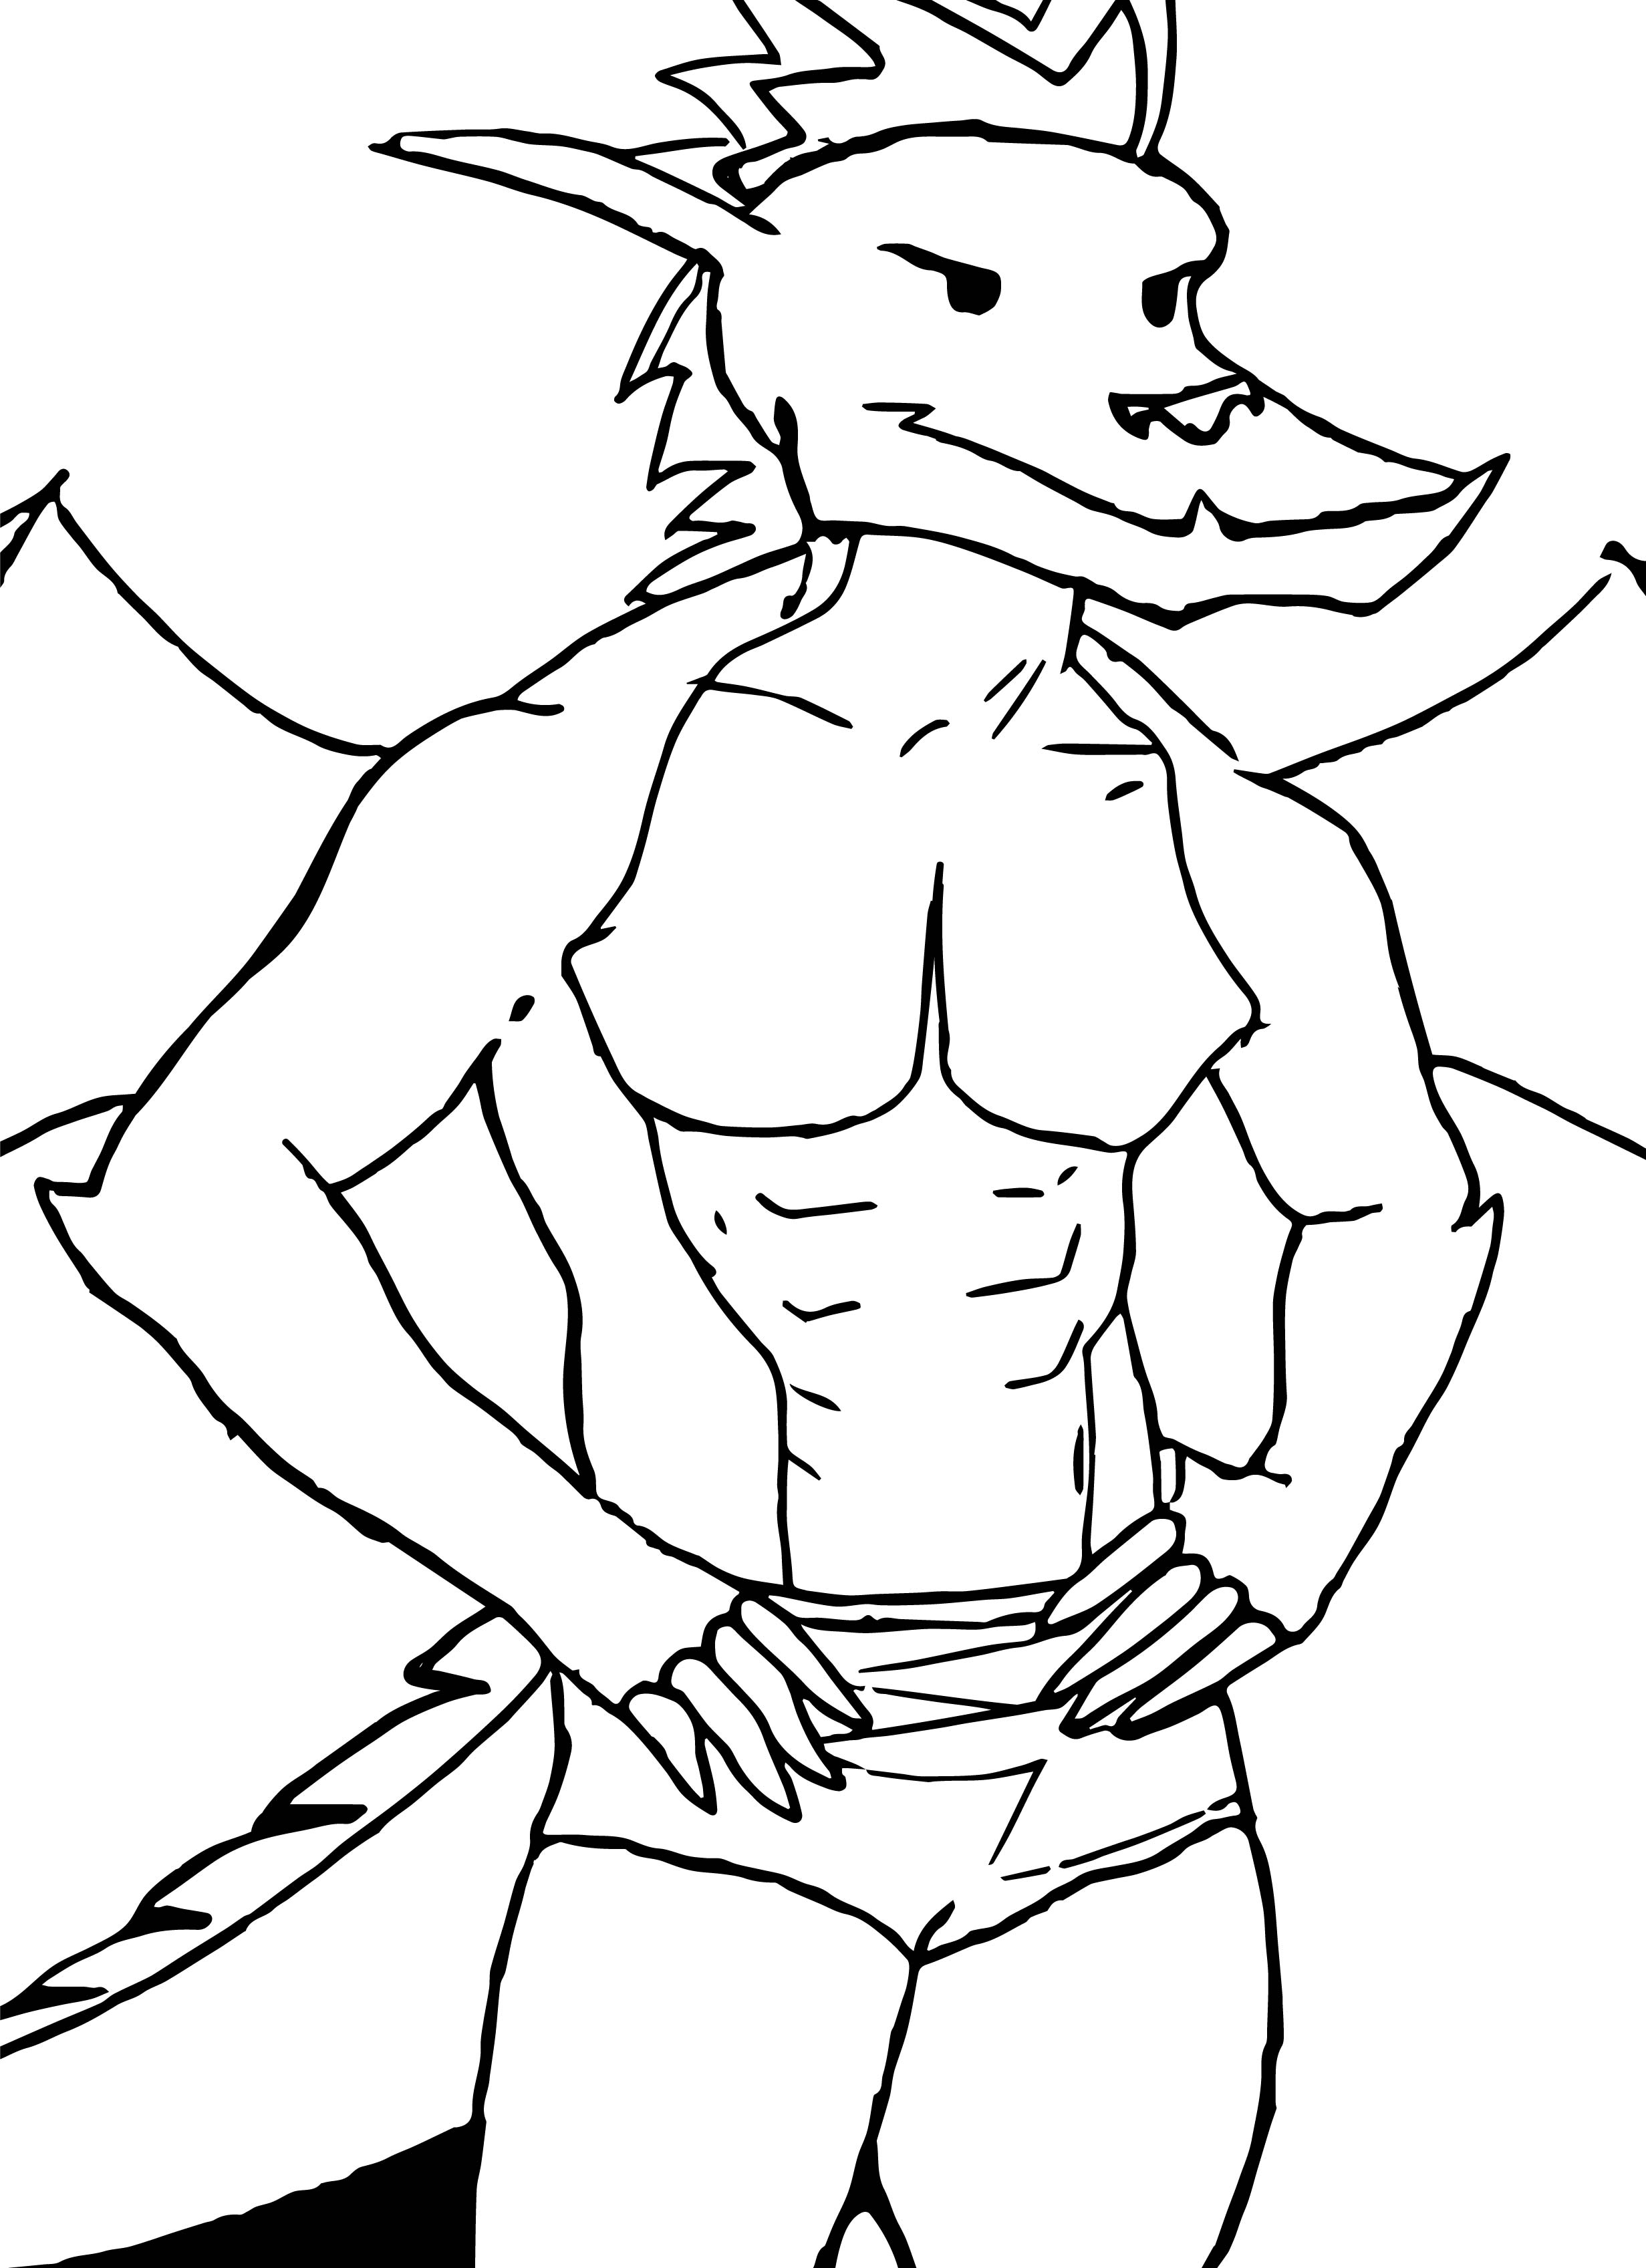 American Dragon Muscle Sketch Coloring Page